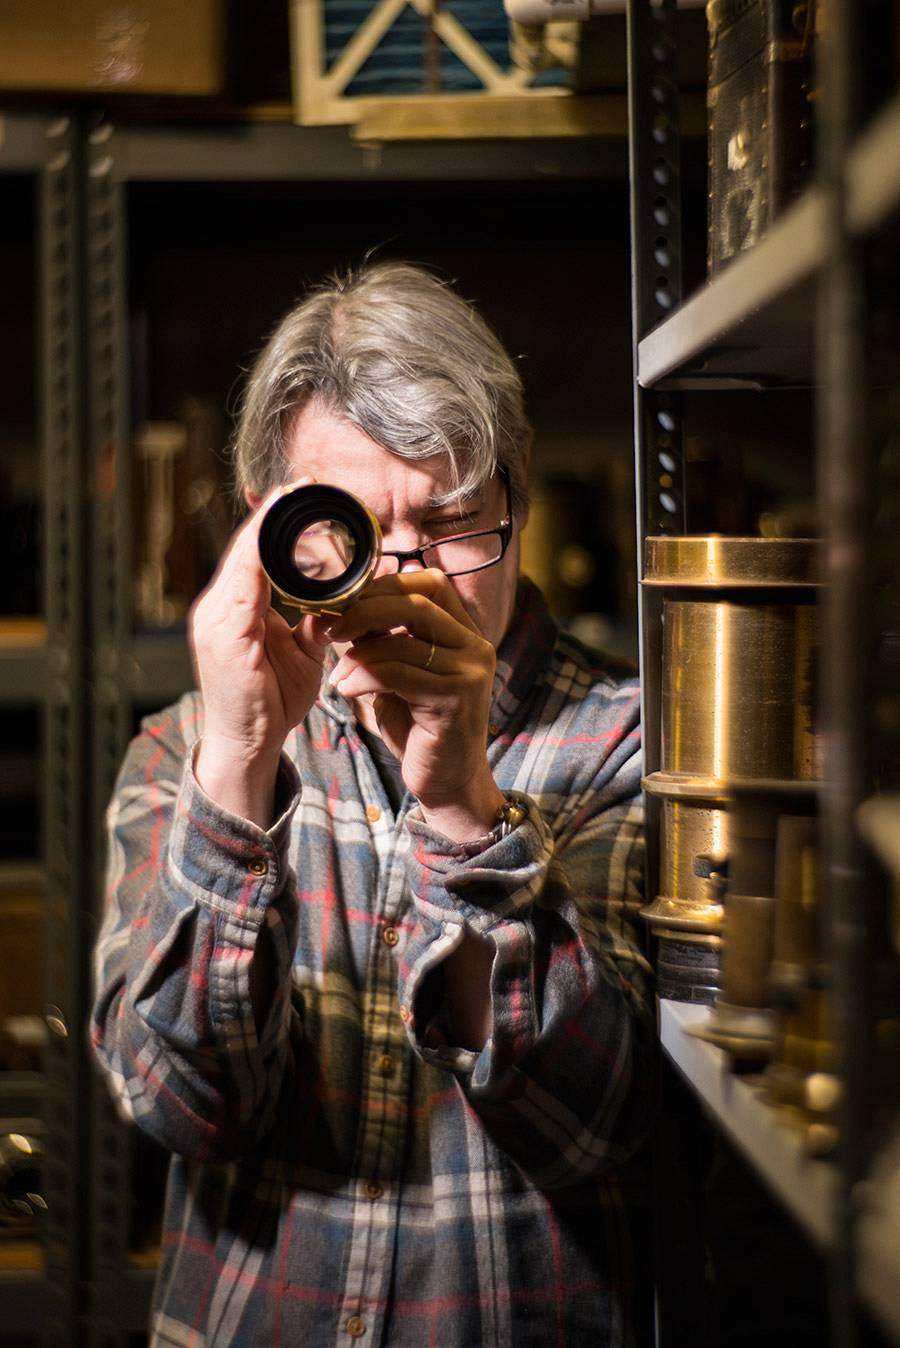 Meeting a Petzval Pioneer: An Interview with Geoffrey Berliner